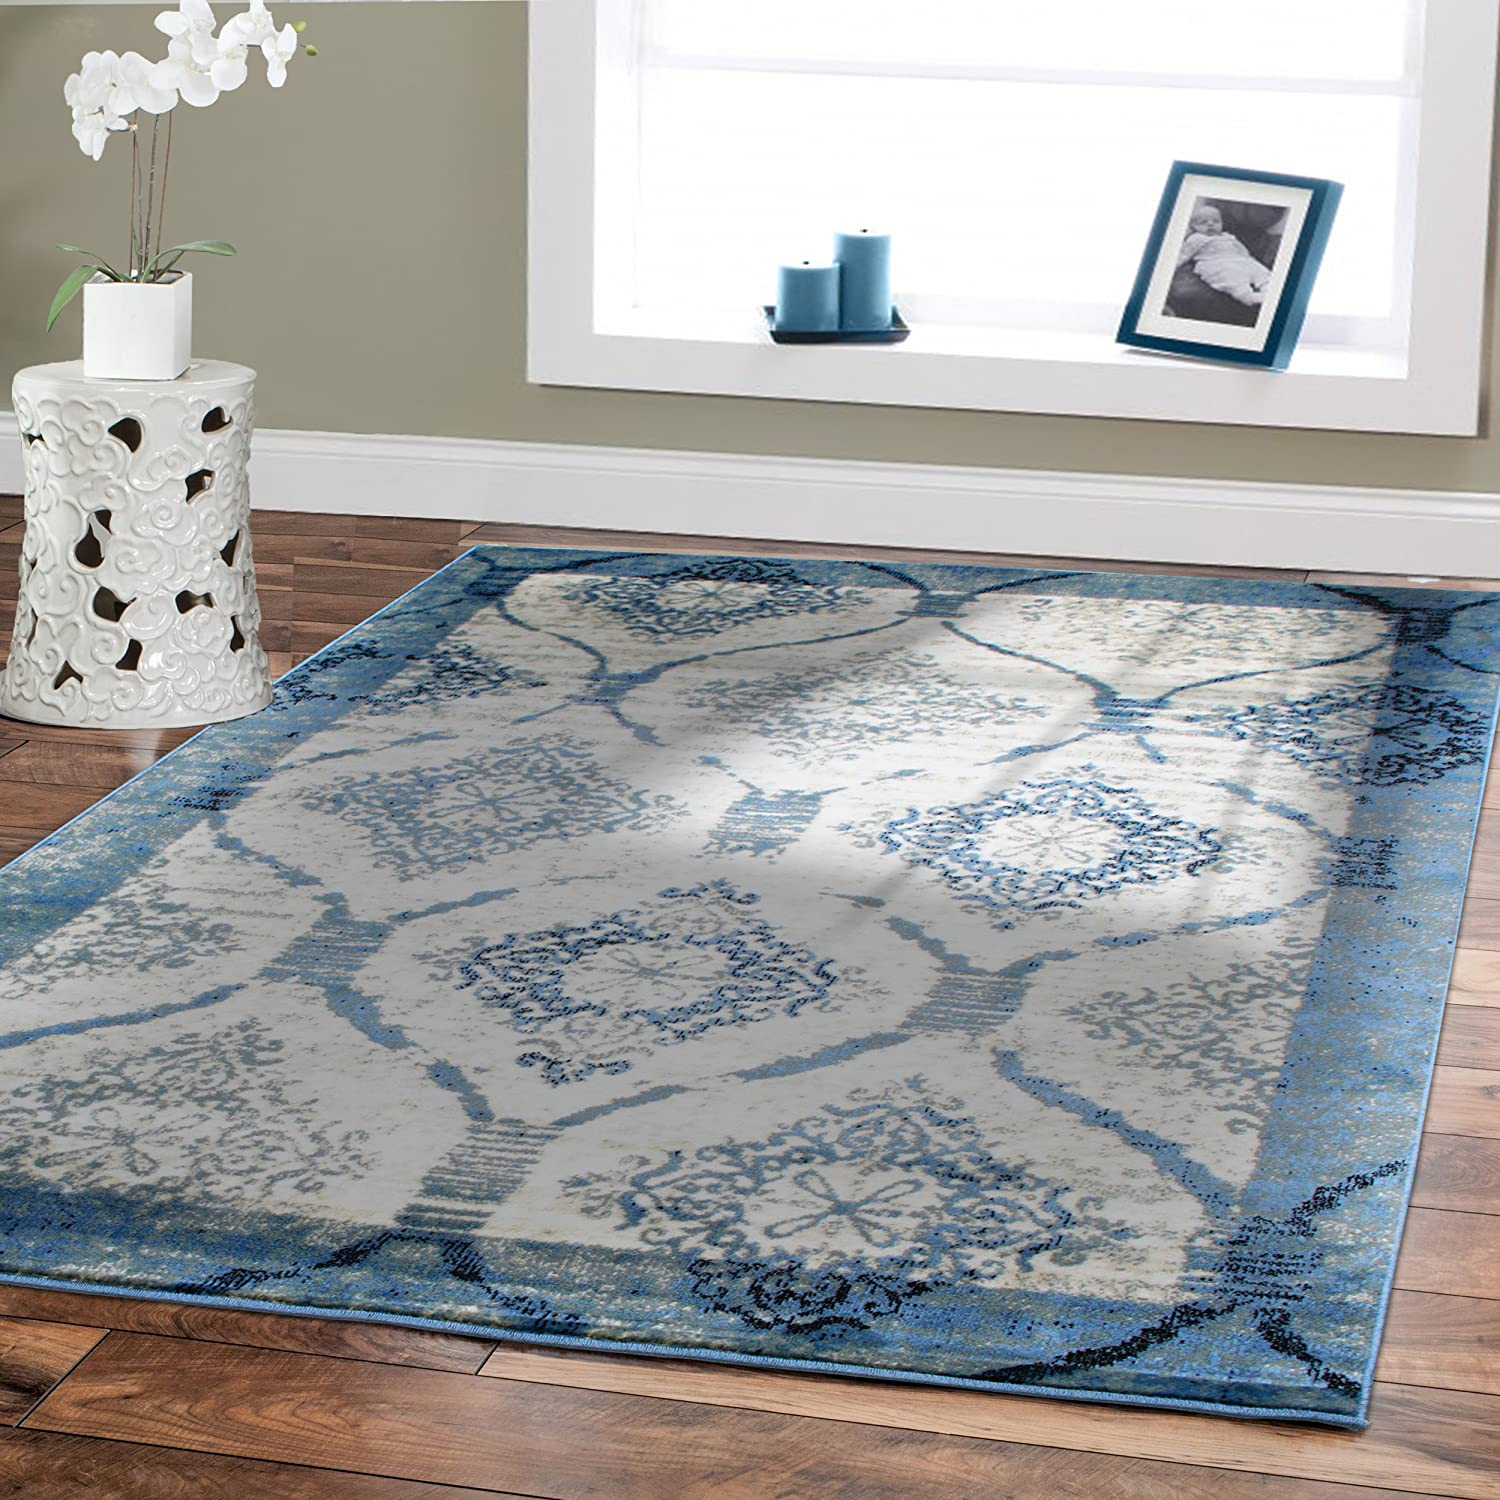 Amazon.com: Contemporary Rugs For Living Room 5x8 Blue Area Rug Modern Rugs  For Dining Room Blue Black Cream Greys Modern Rugs 5x7 Bedroom Carpet:  Kitchen U0026 ...